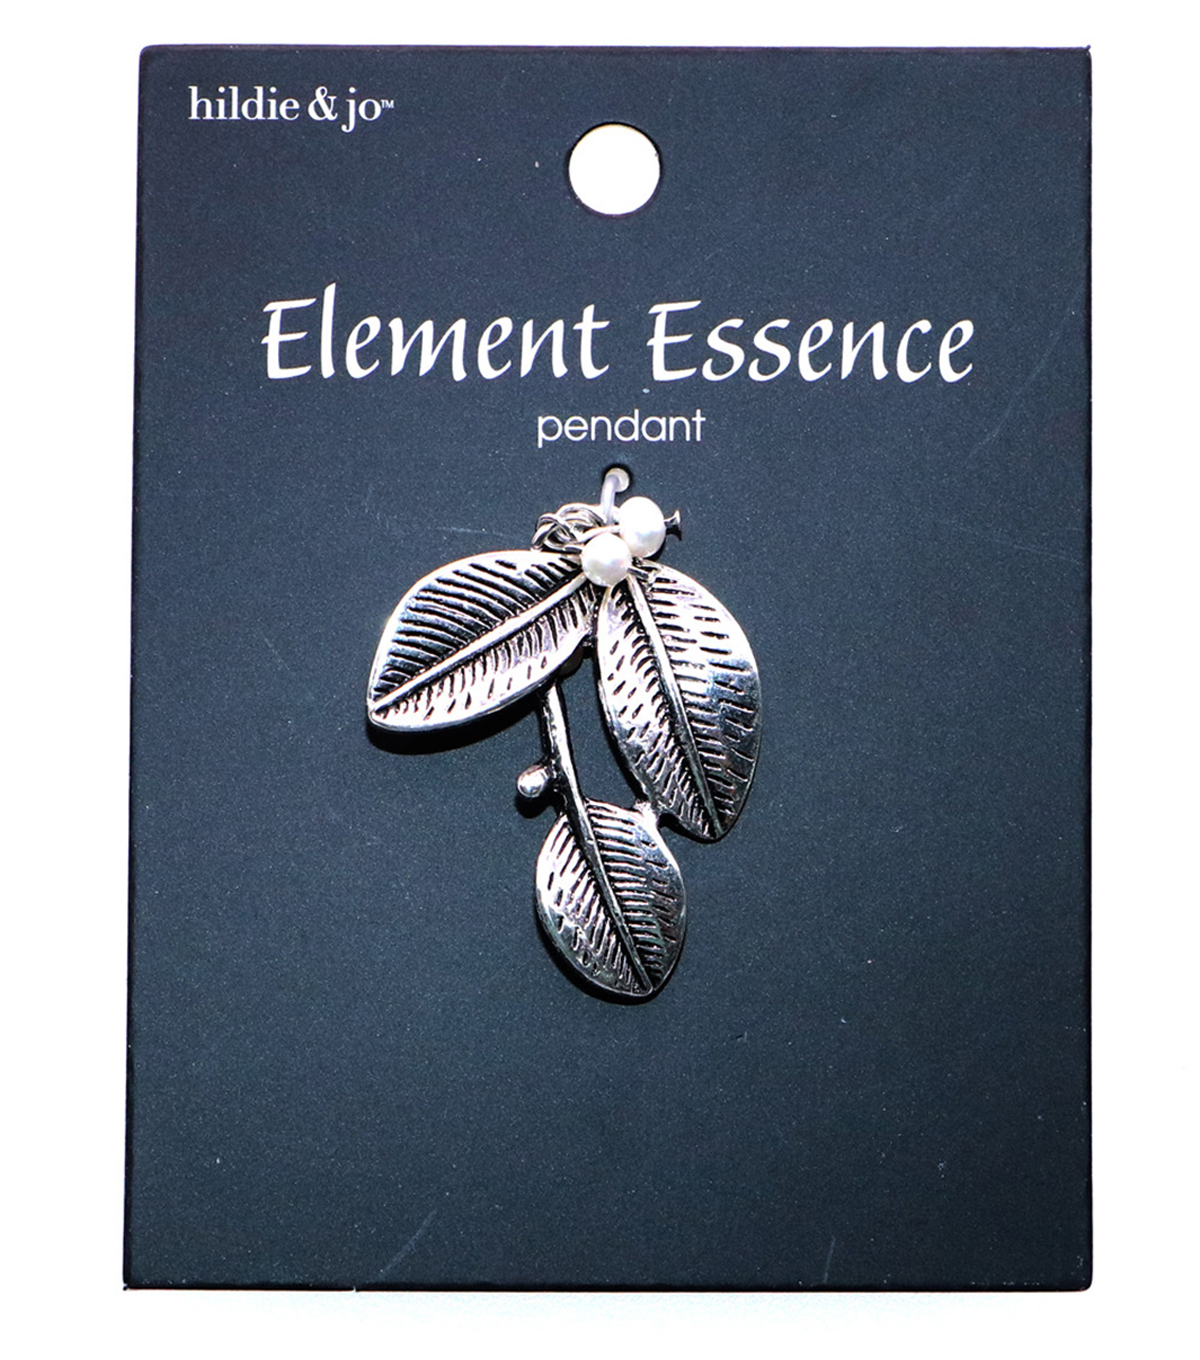 hildie & jo Element Essence Silver Leaf Pendant-Pearl